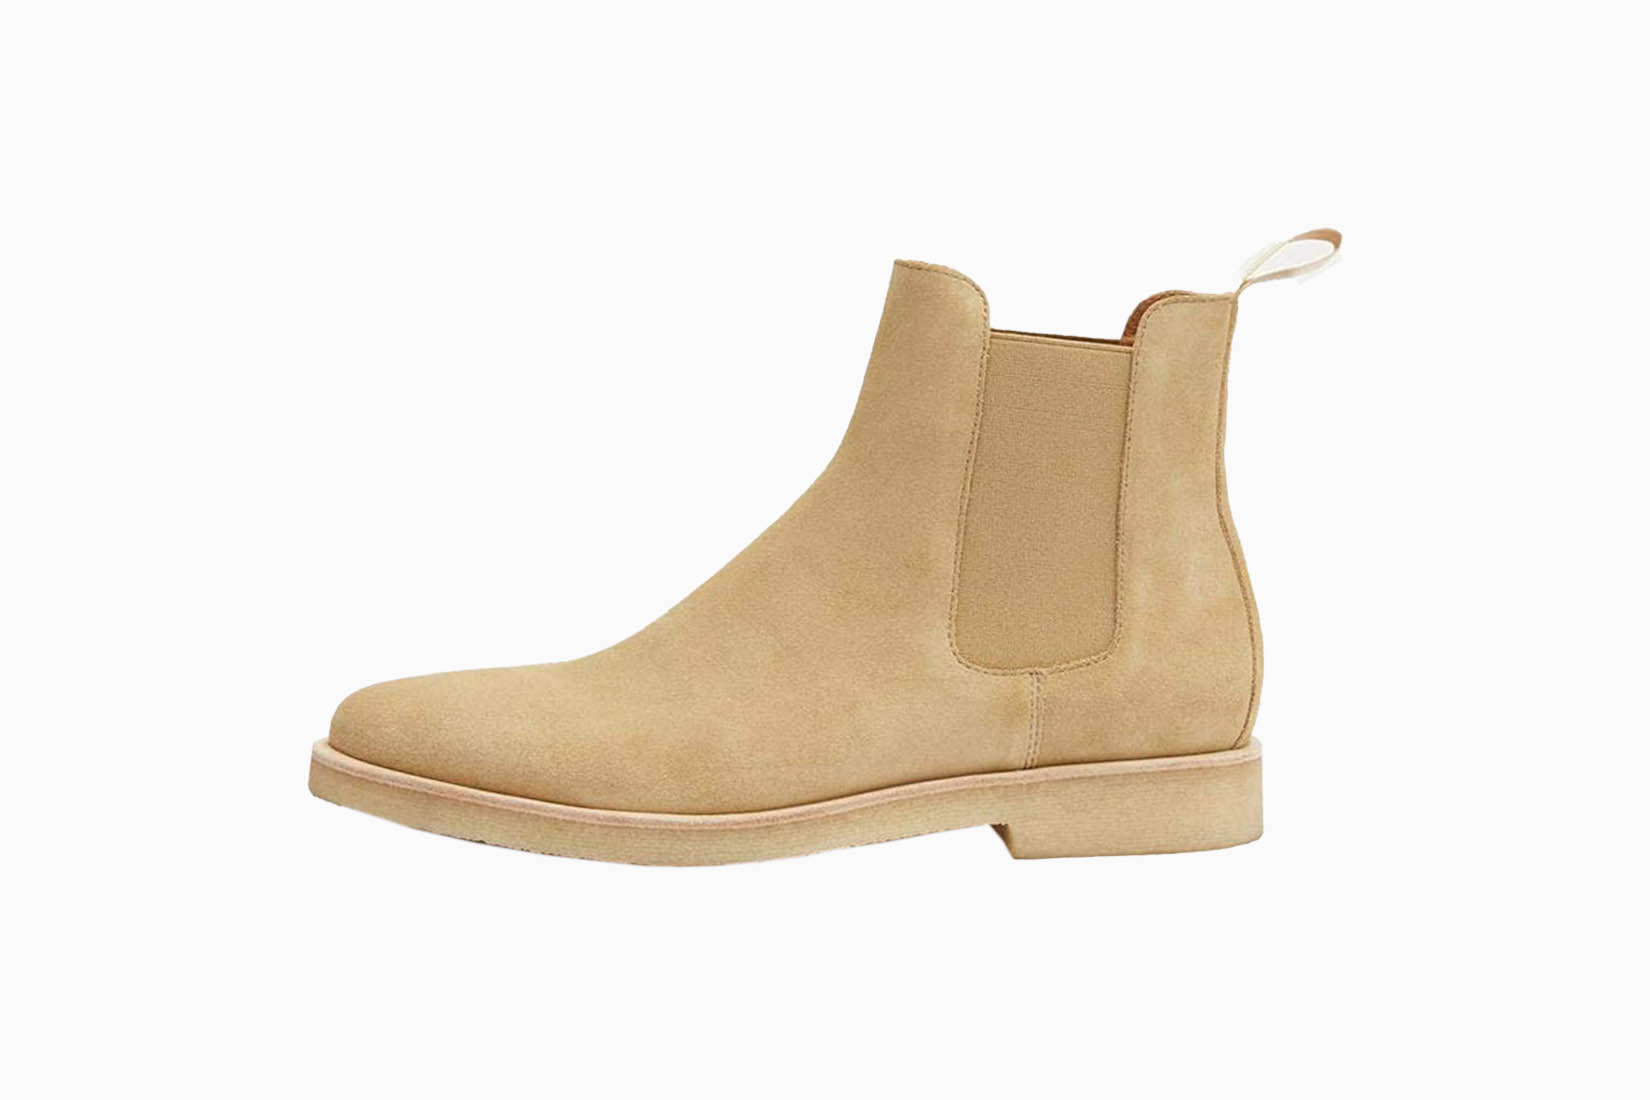 best casual shoes men new republic chelsea boot review Luxe Digital